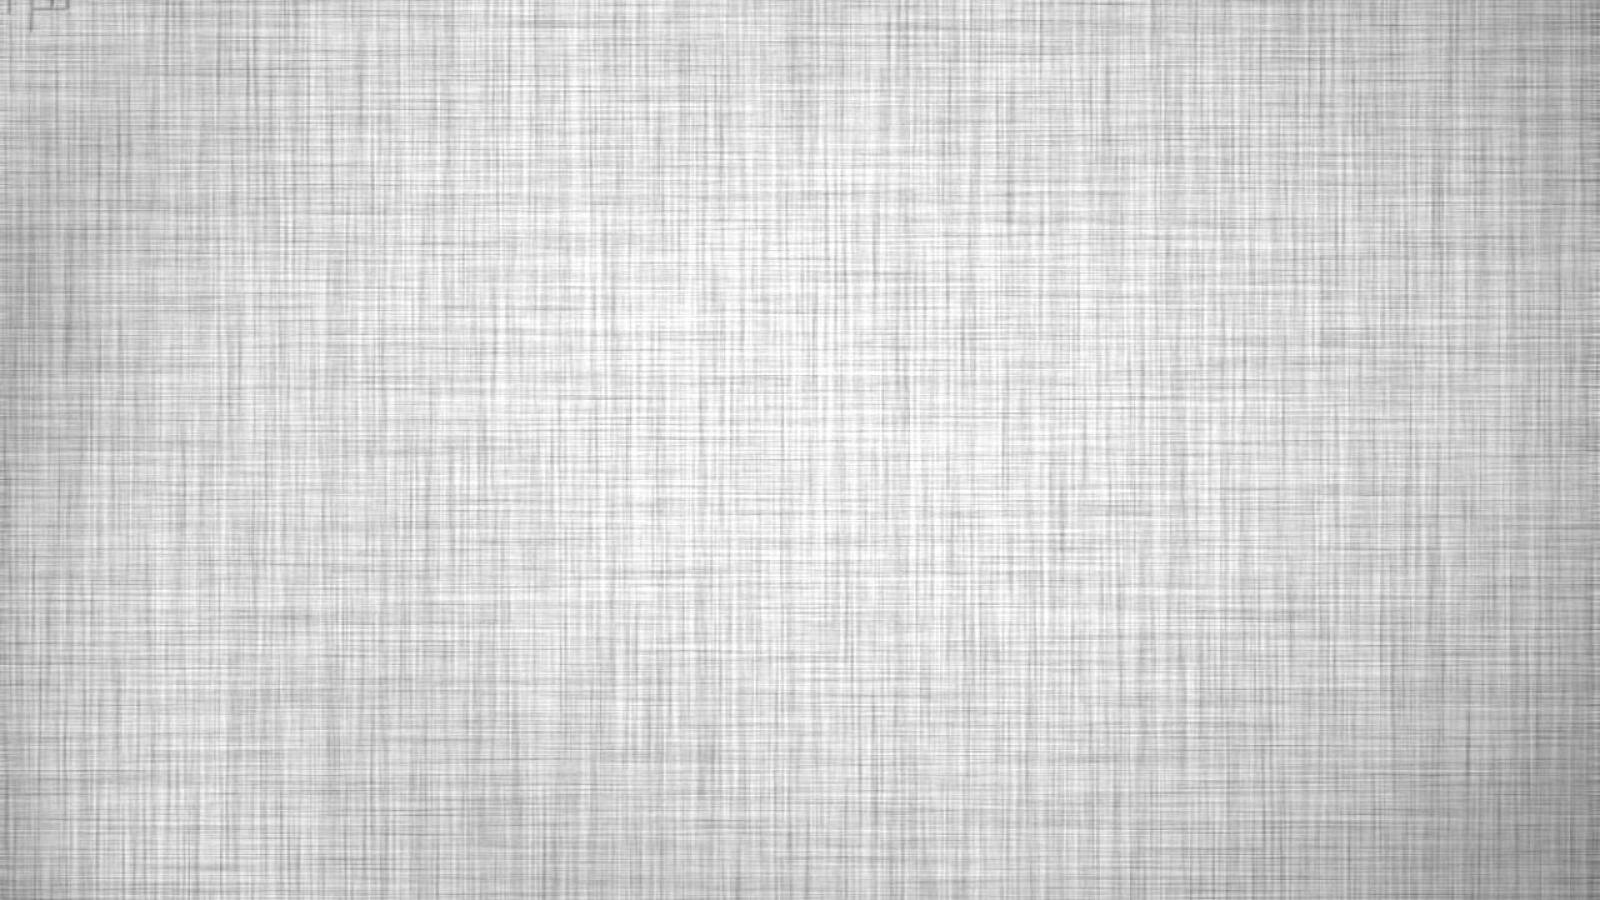 Top Anime Wallpaper Engine Download Plain White Textured Wallpapers Background Is